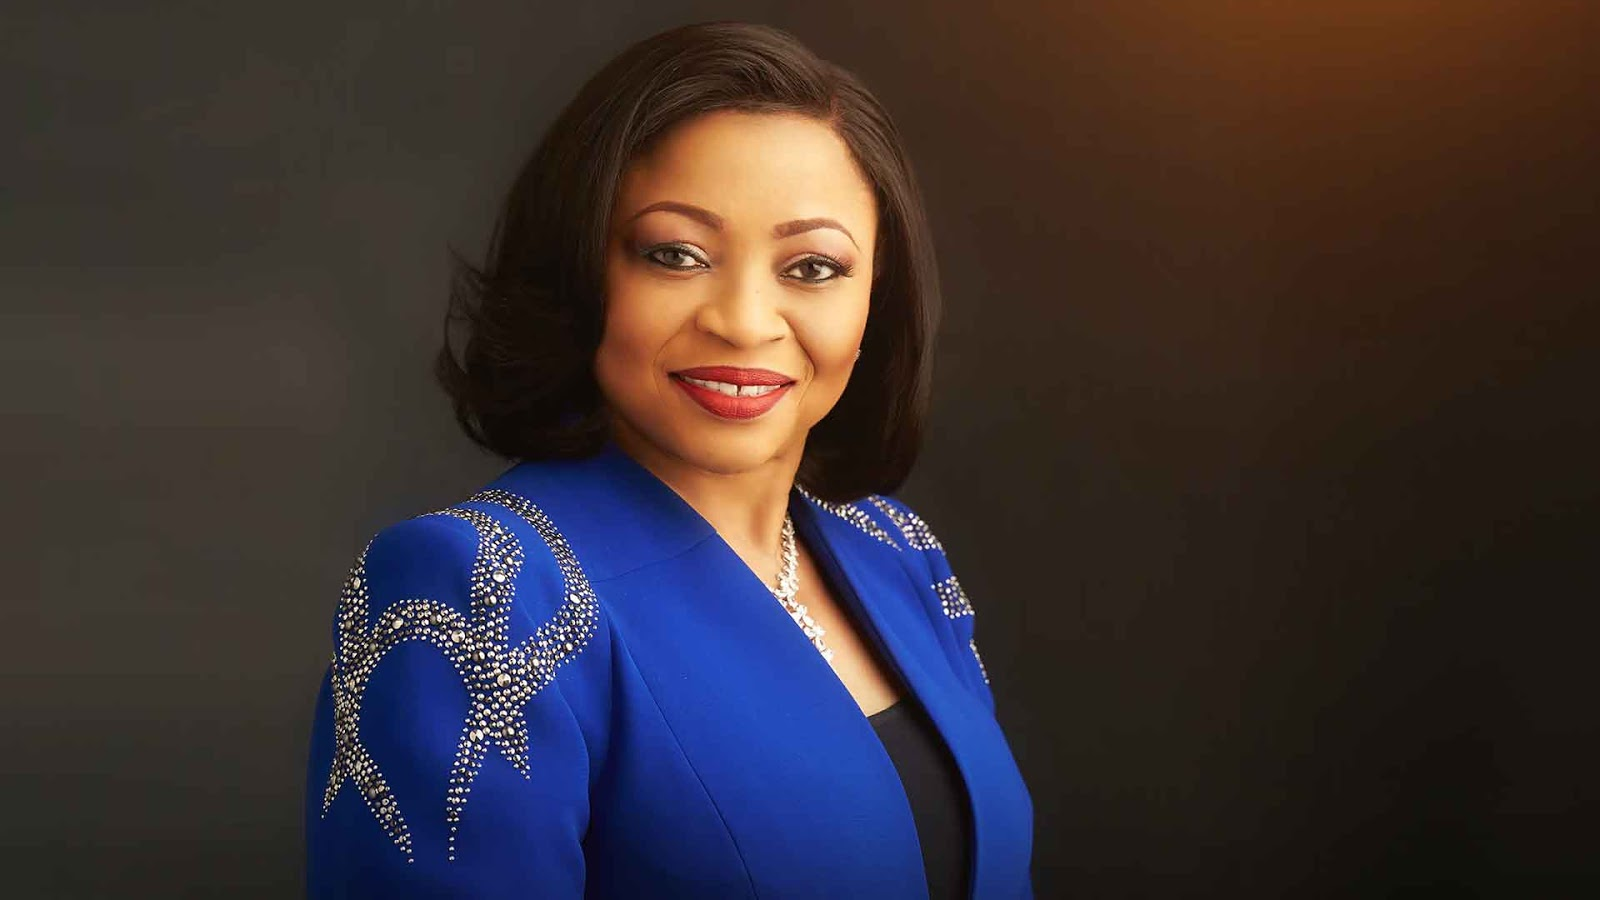 See The List Of Top 10 Wealthiest Women In Africa. 23